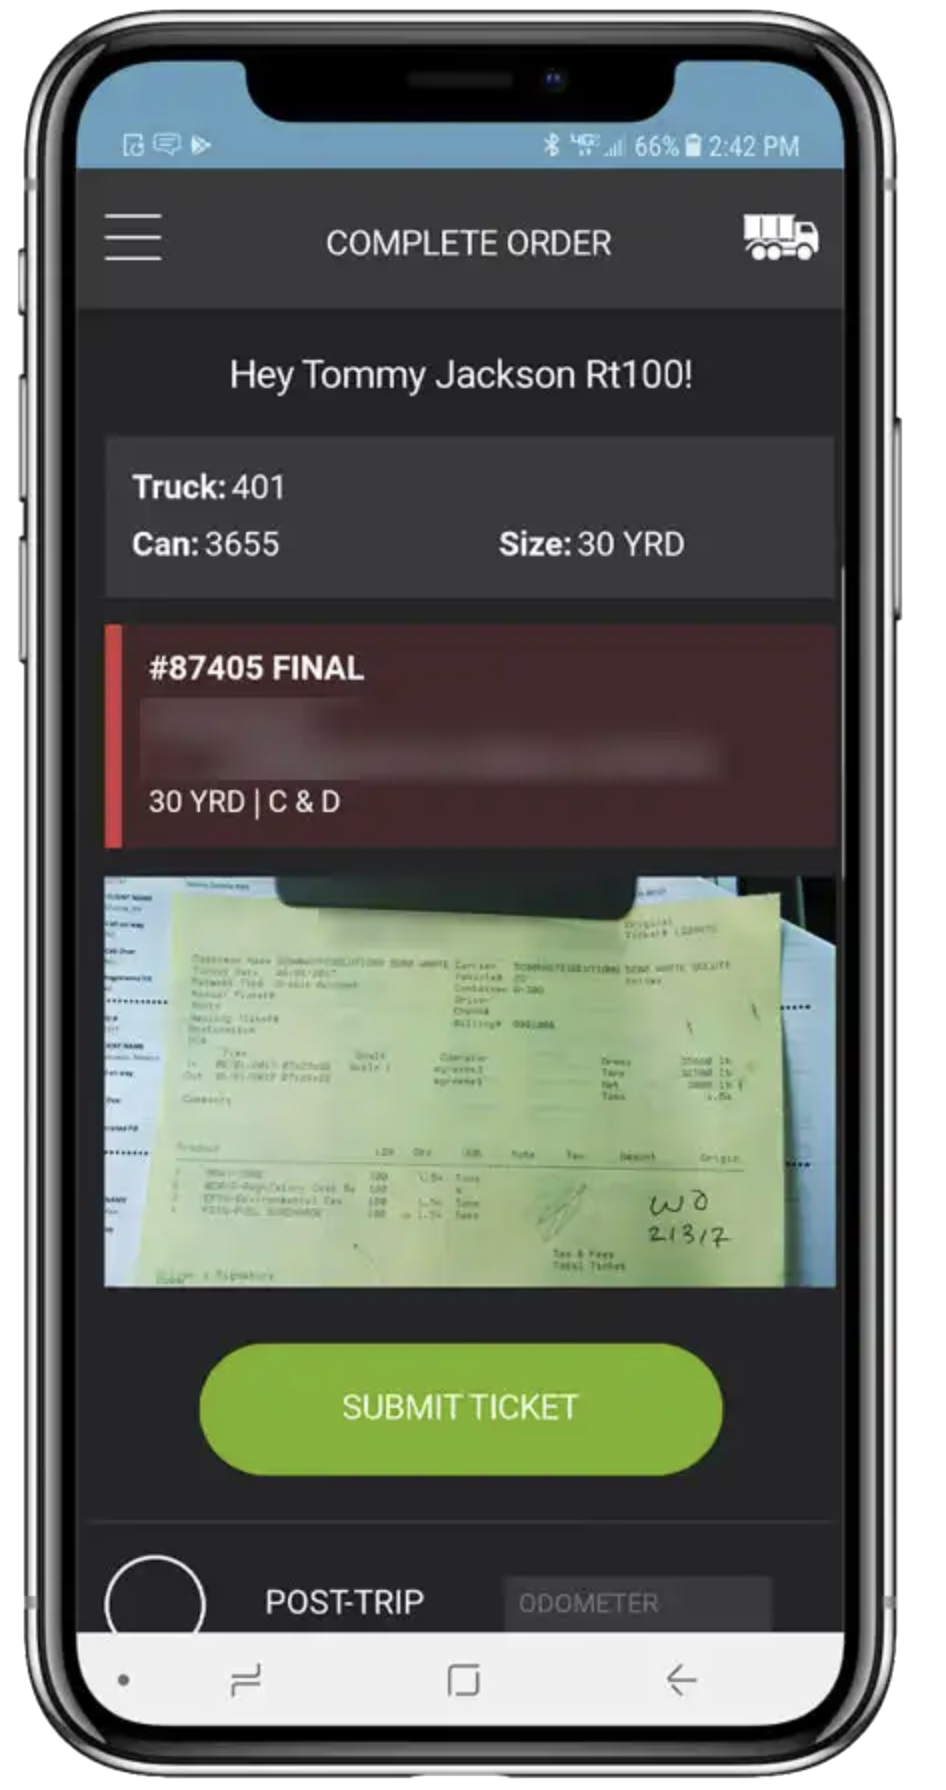 paperless operations made possible by starlight driver mobile app